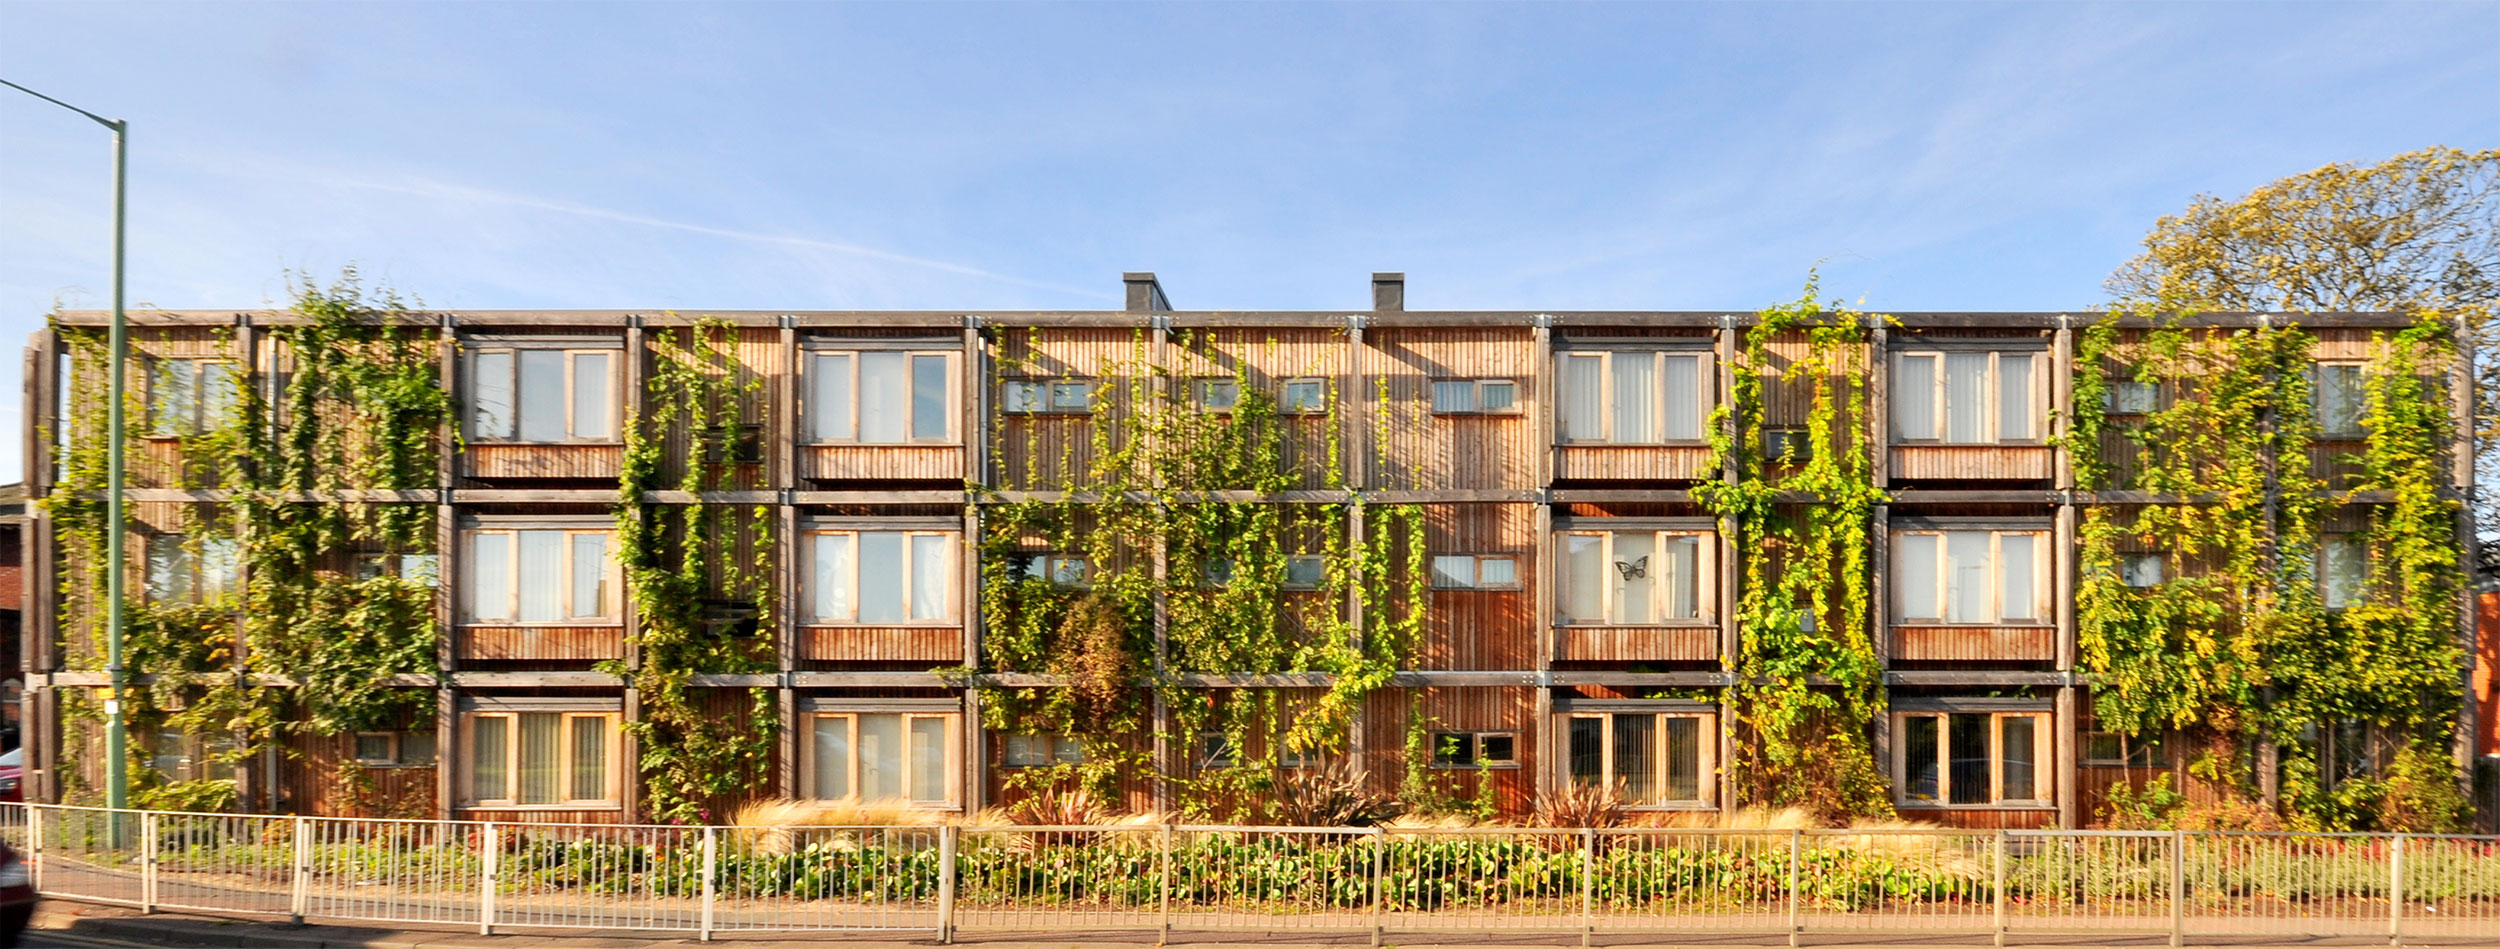 kings road flats modece architects